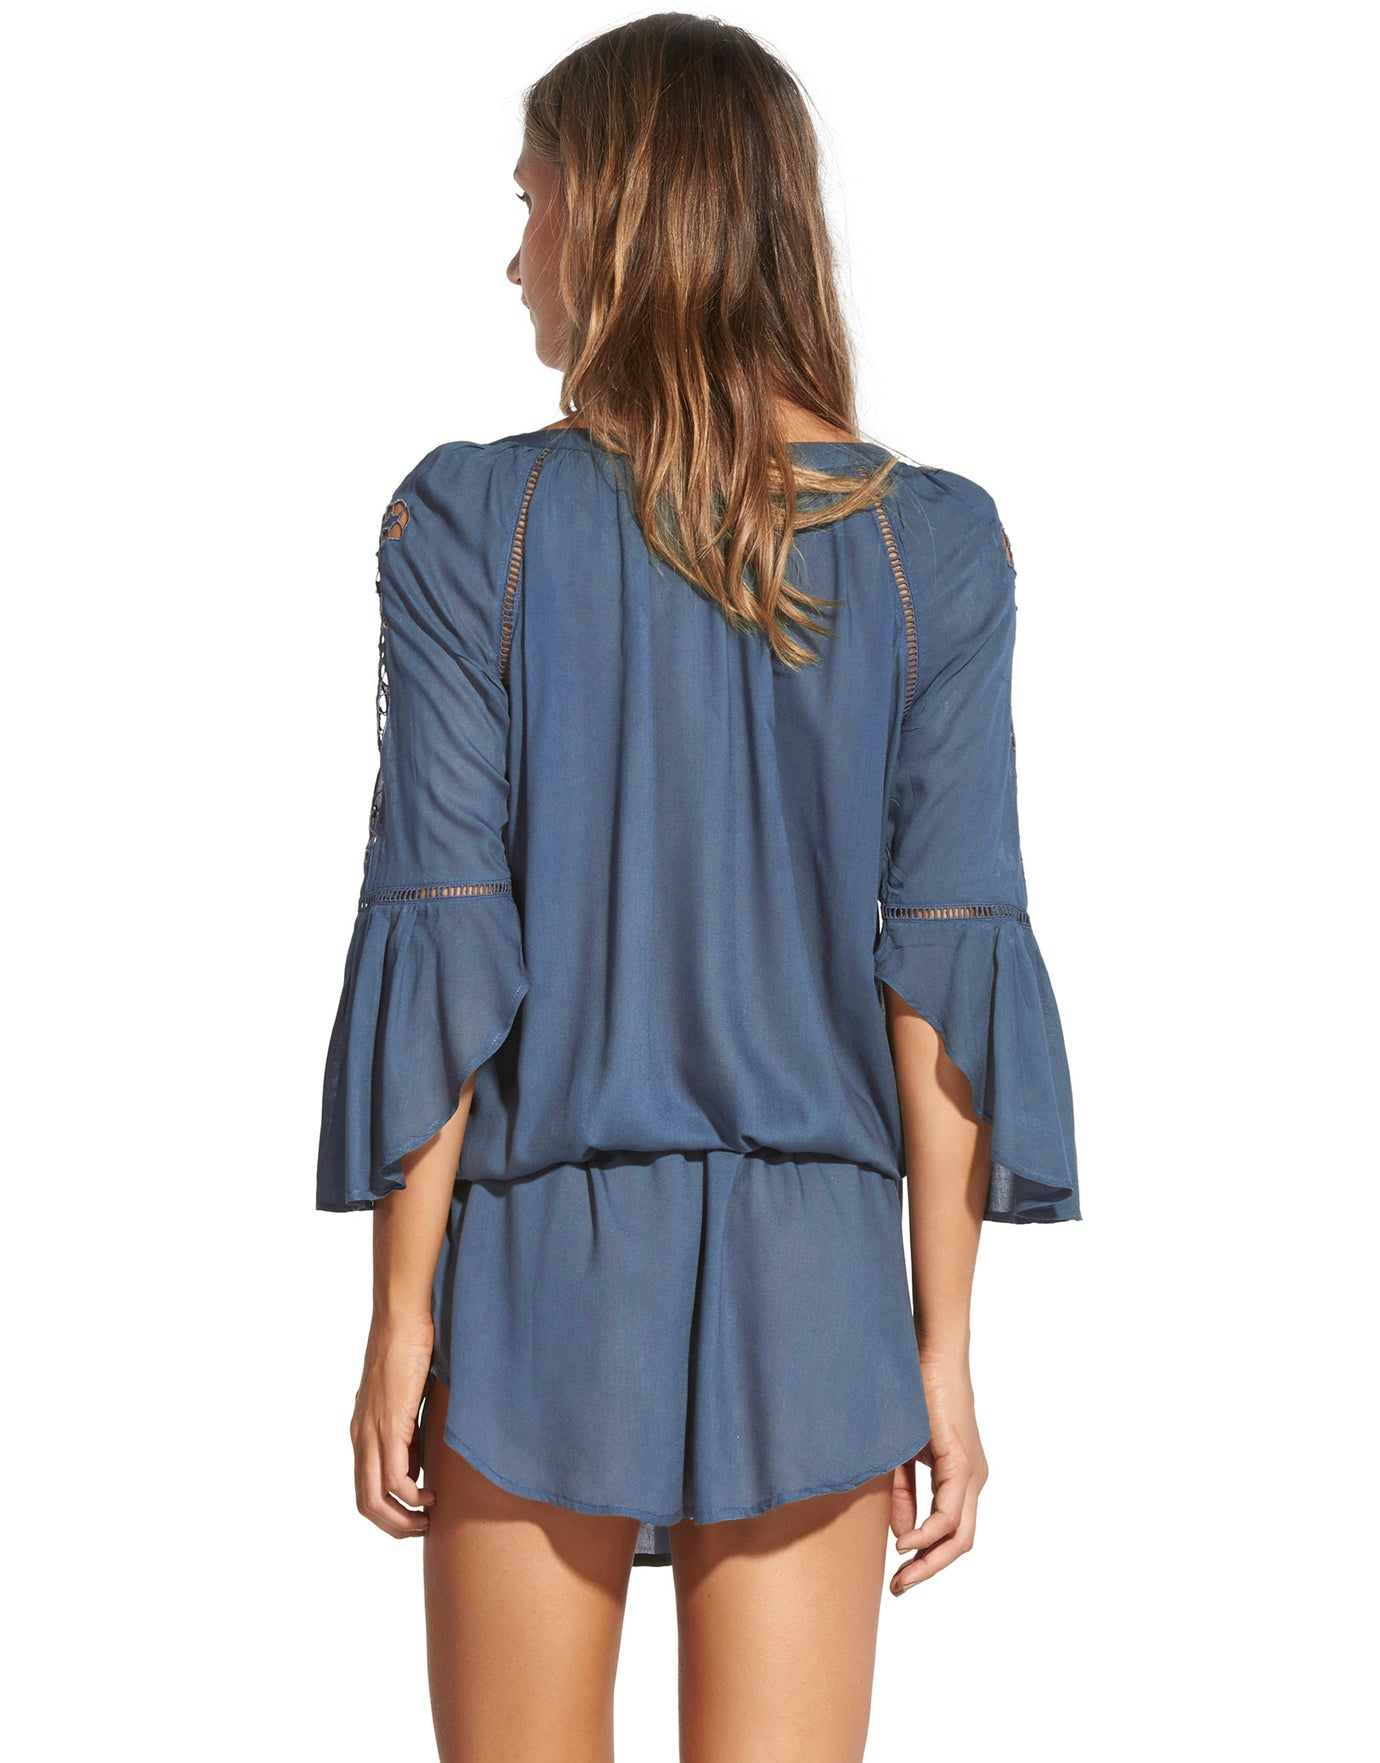 ViX Blue Grey Embroidery Chemise Tunic - Grey